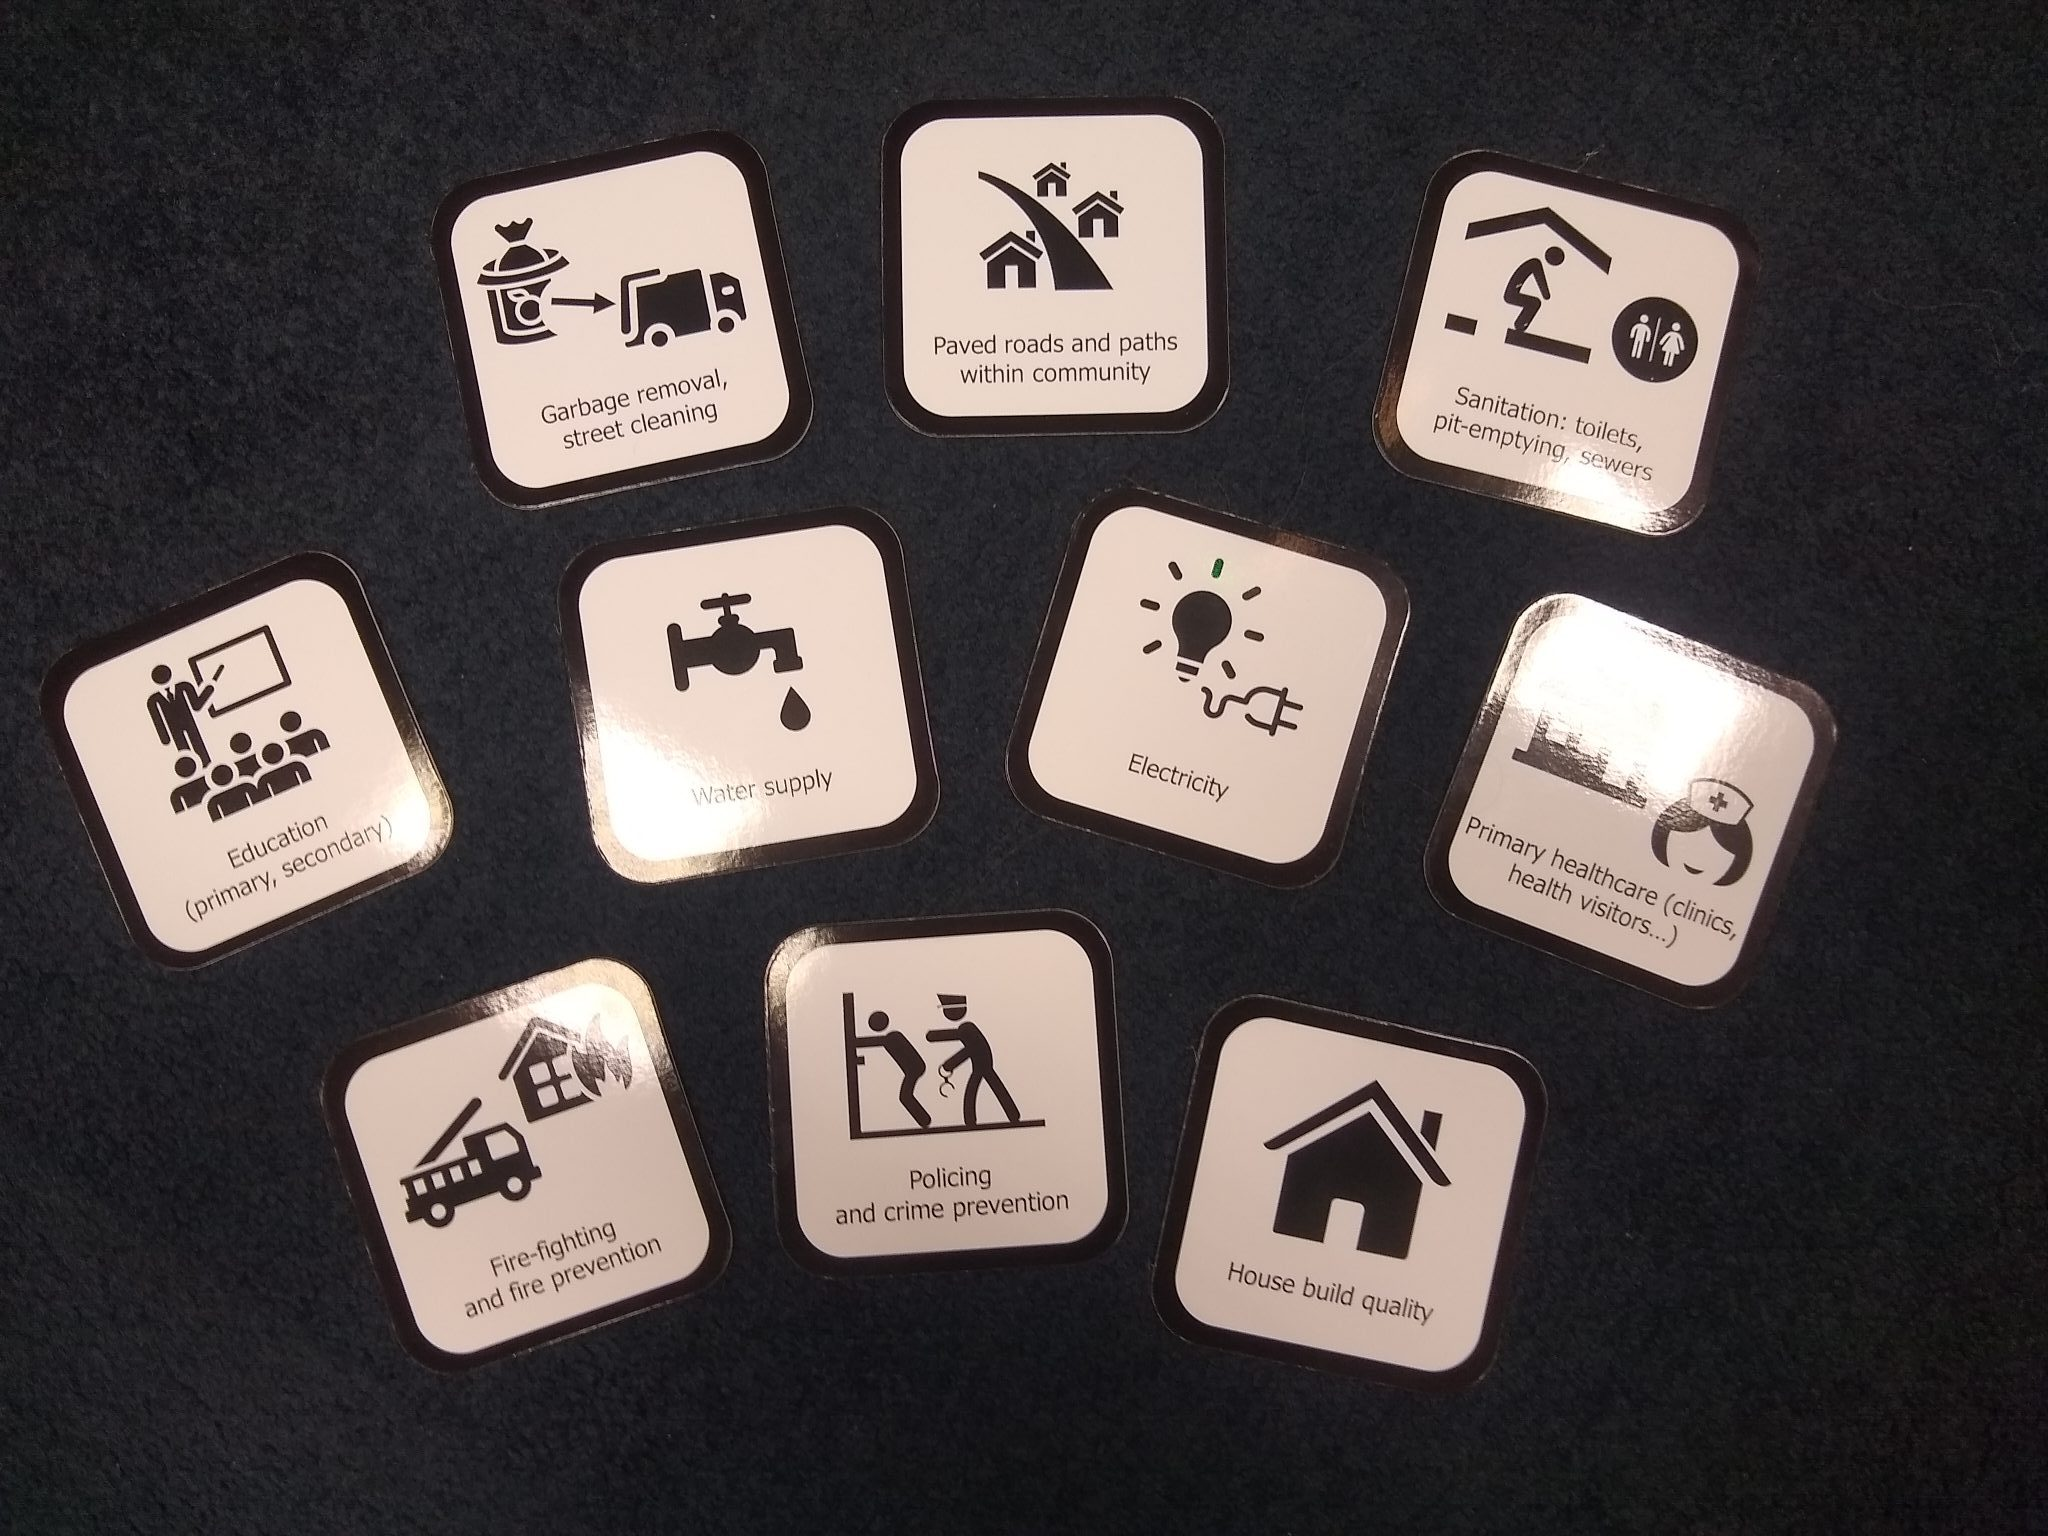 Cards representing basic services